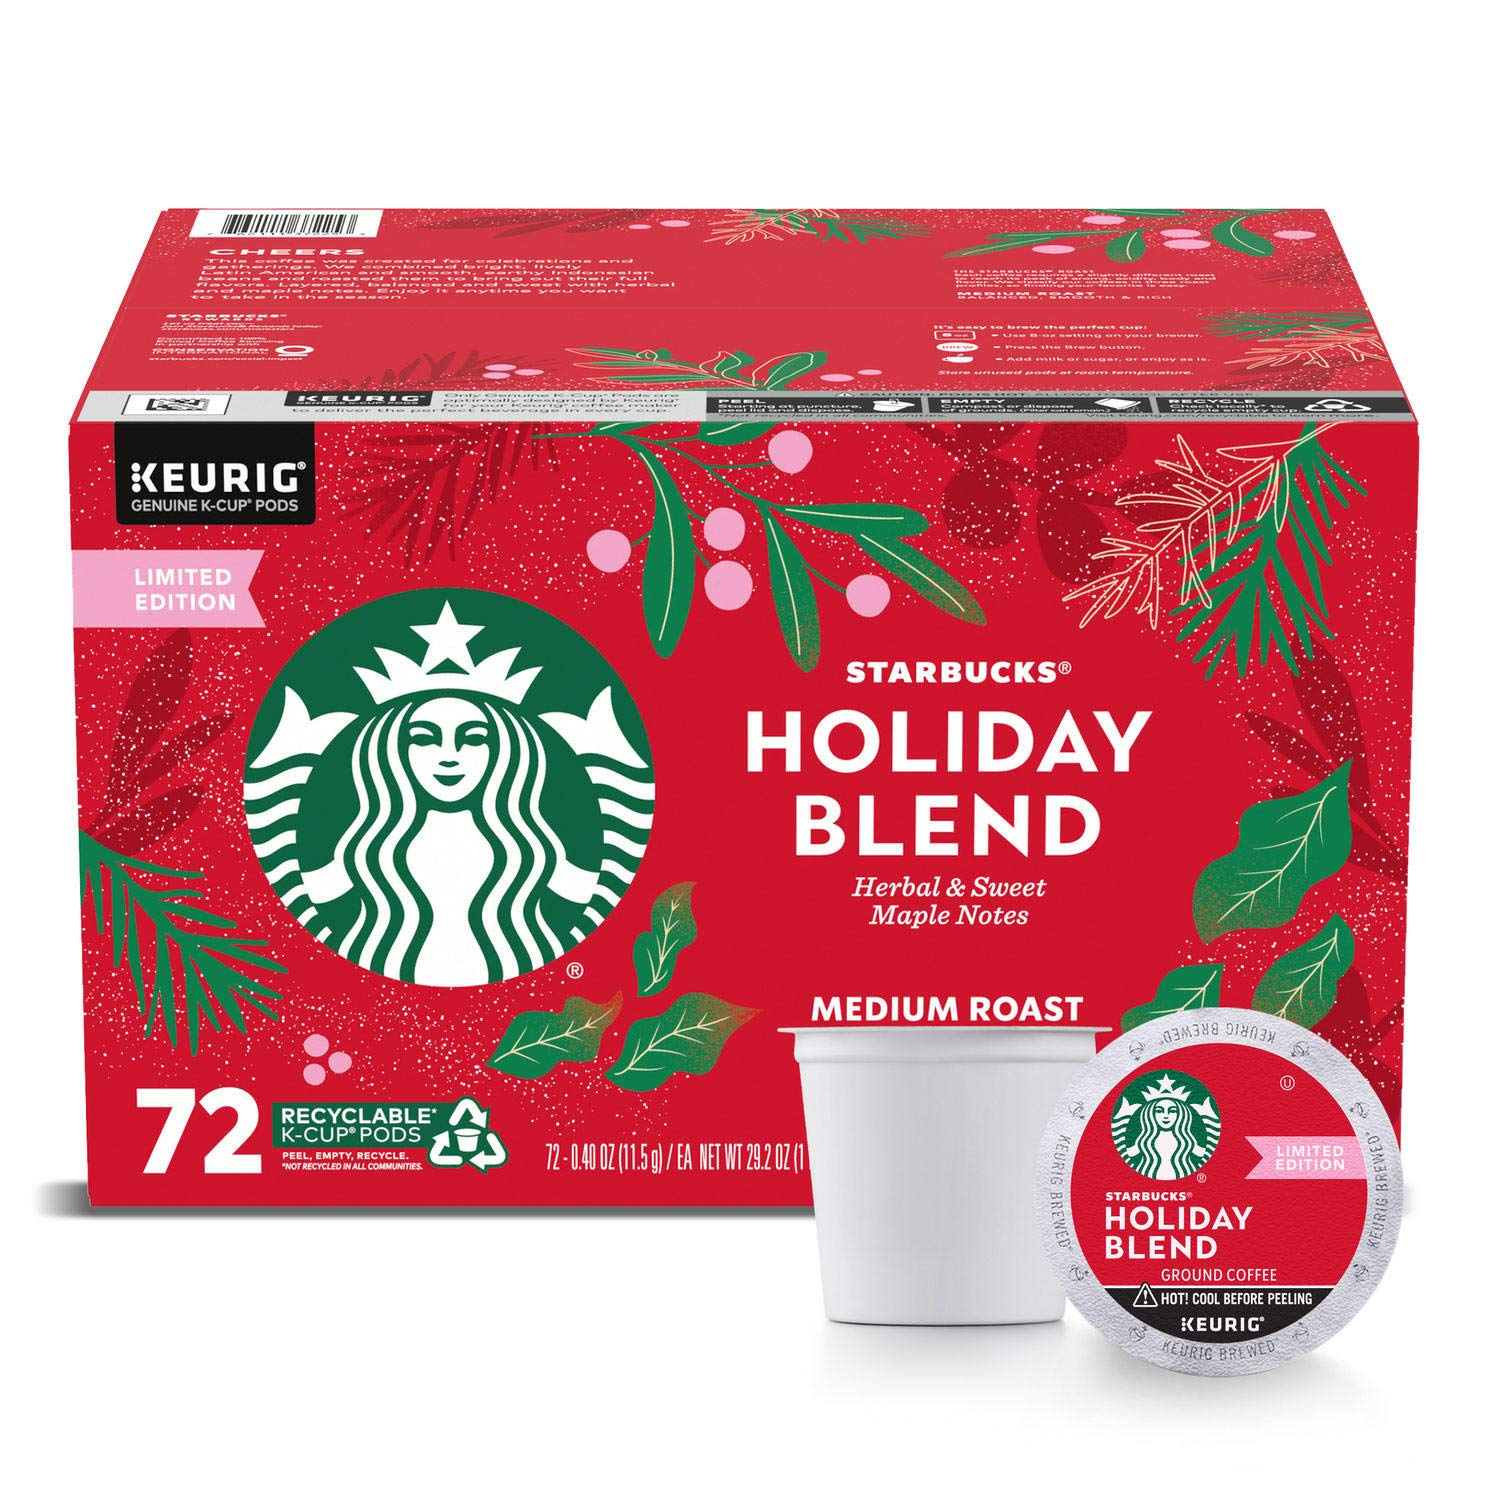 Starbucks Christmas Blend 2020 Kcup Starbucks Coffee Holiday Blend K Cup Pods, 72Count,, 29.2 Oz